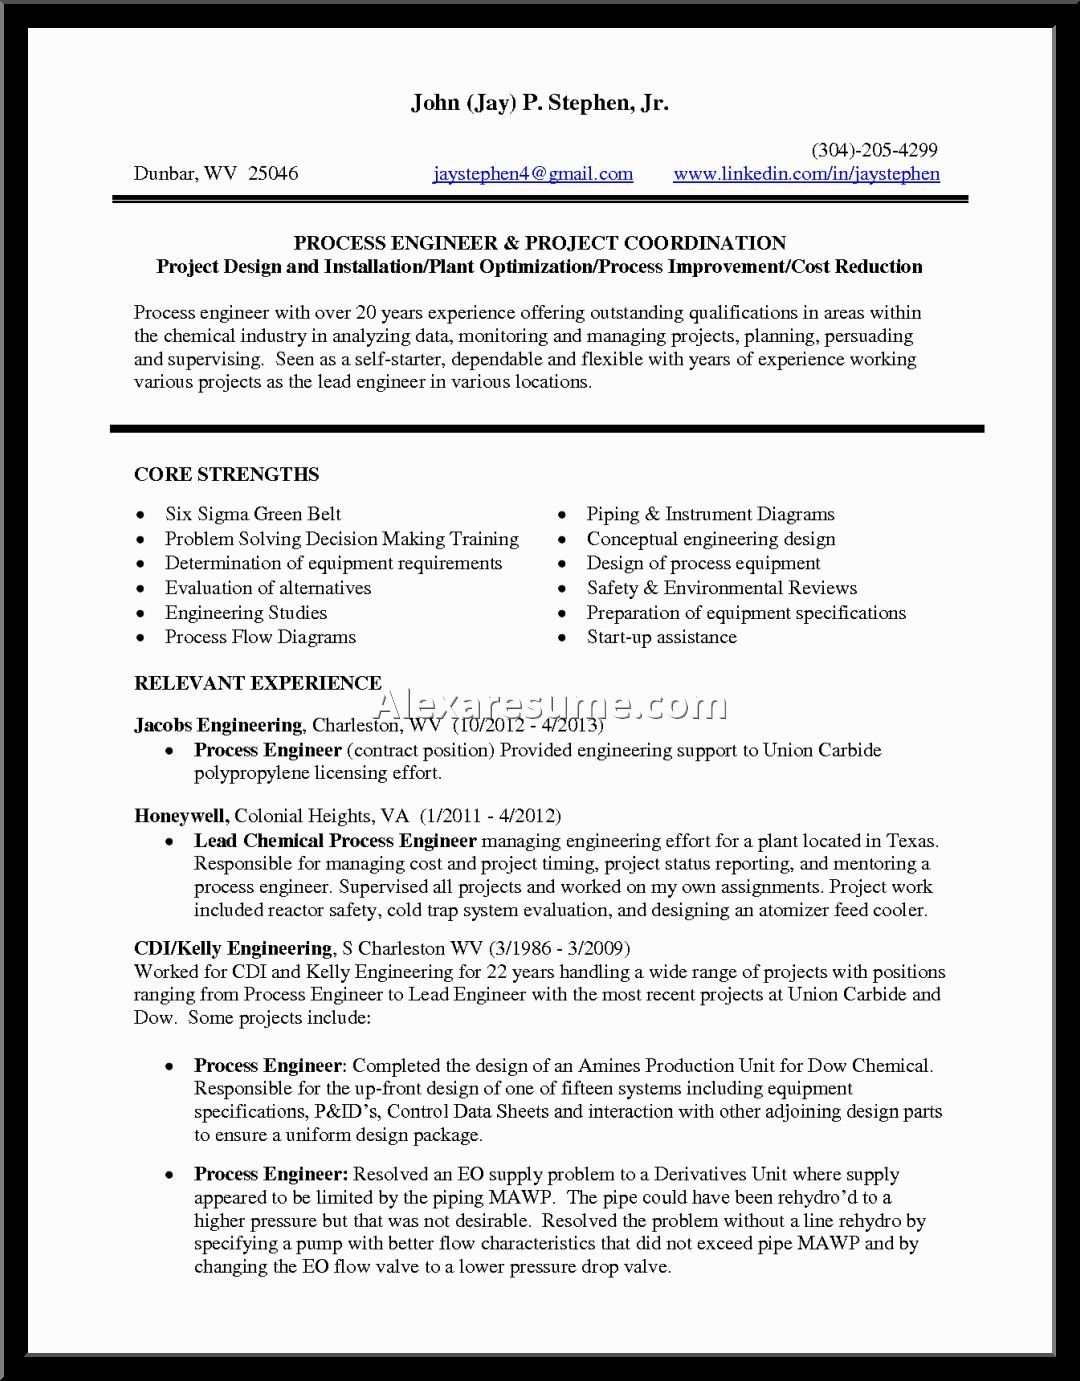 Resumes And Cover Letters The Ohio State University Alumni Brutus